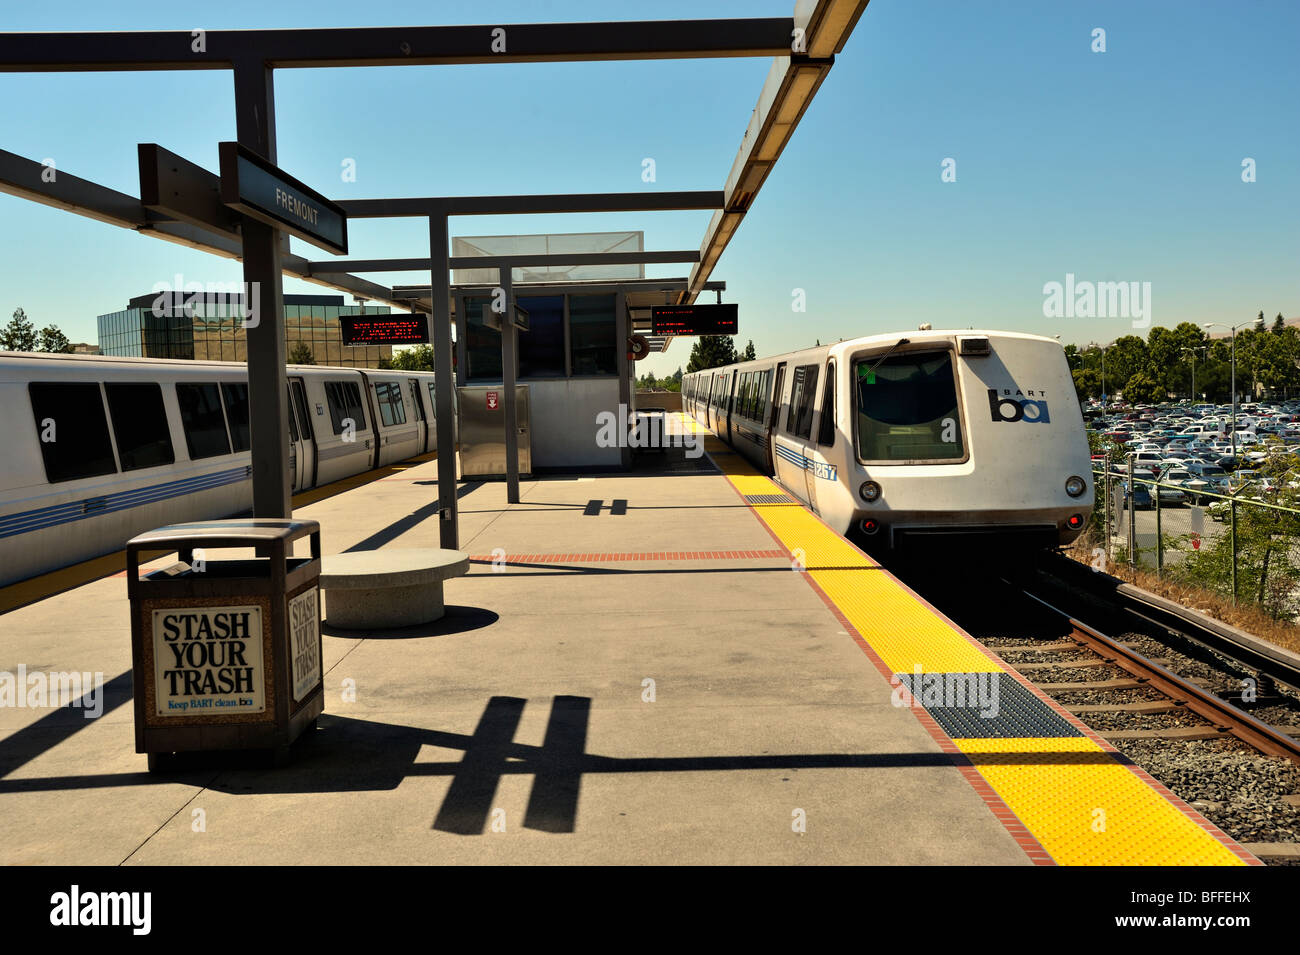 Trains in the BART station in San Francisco bay area - Stock Image